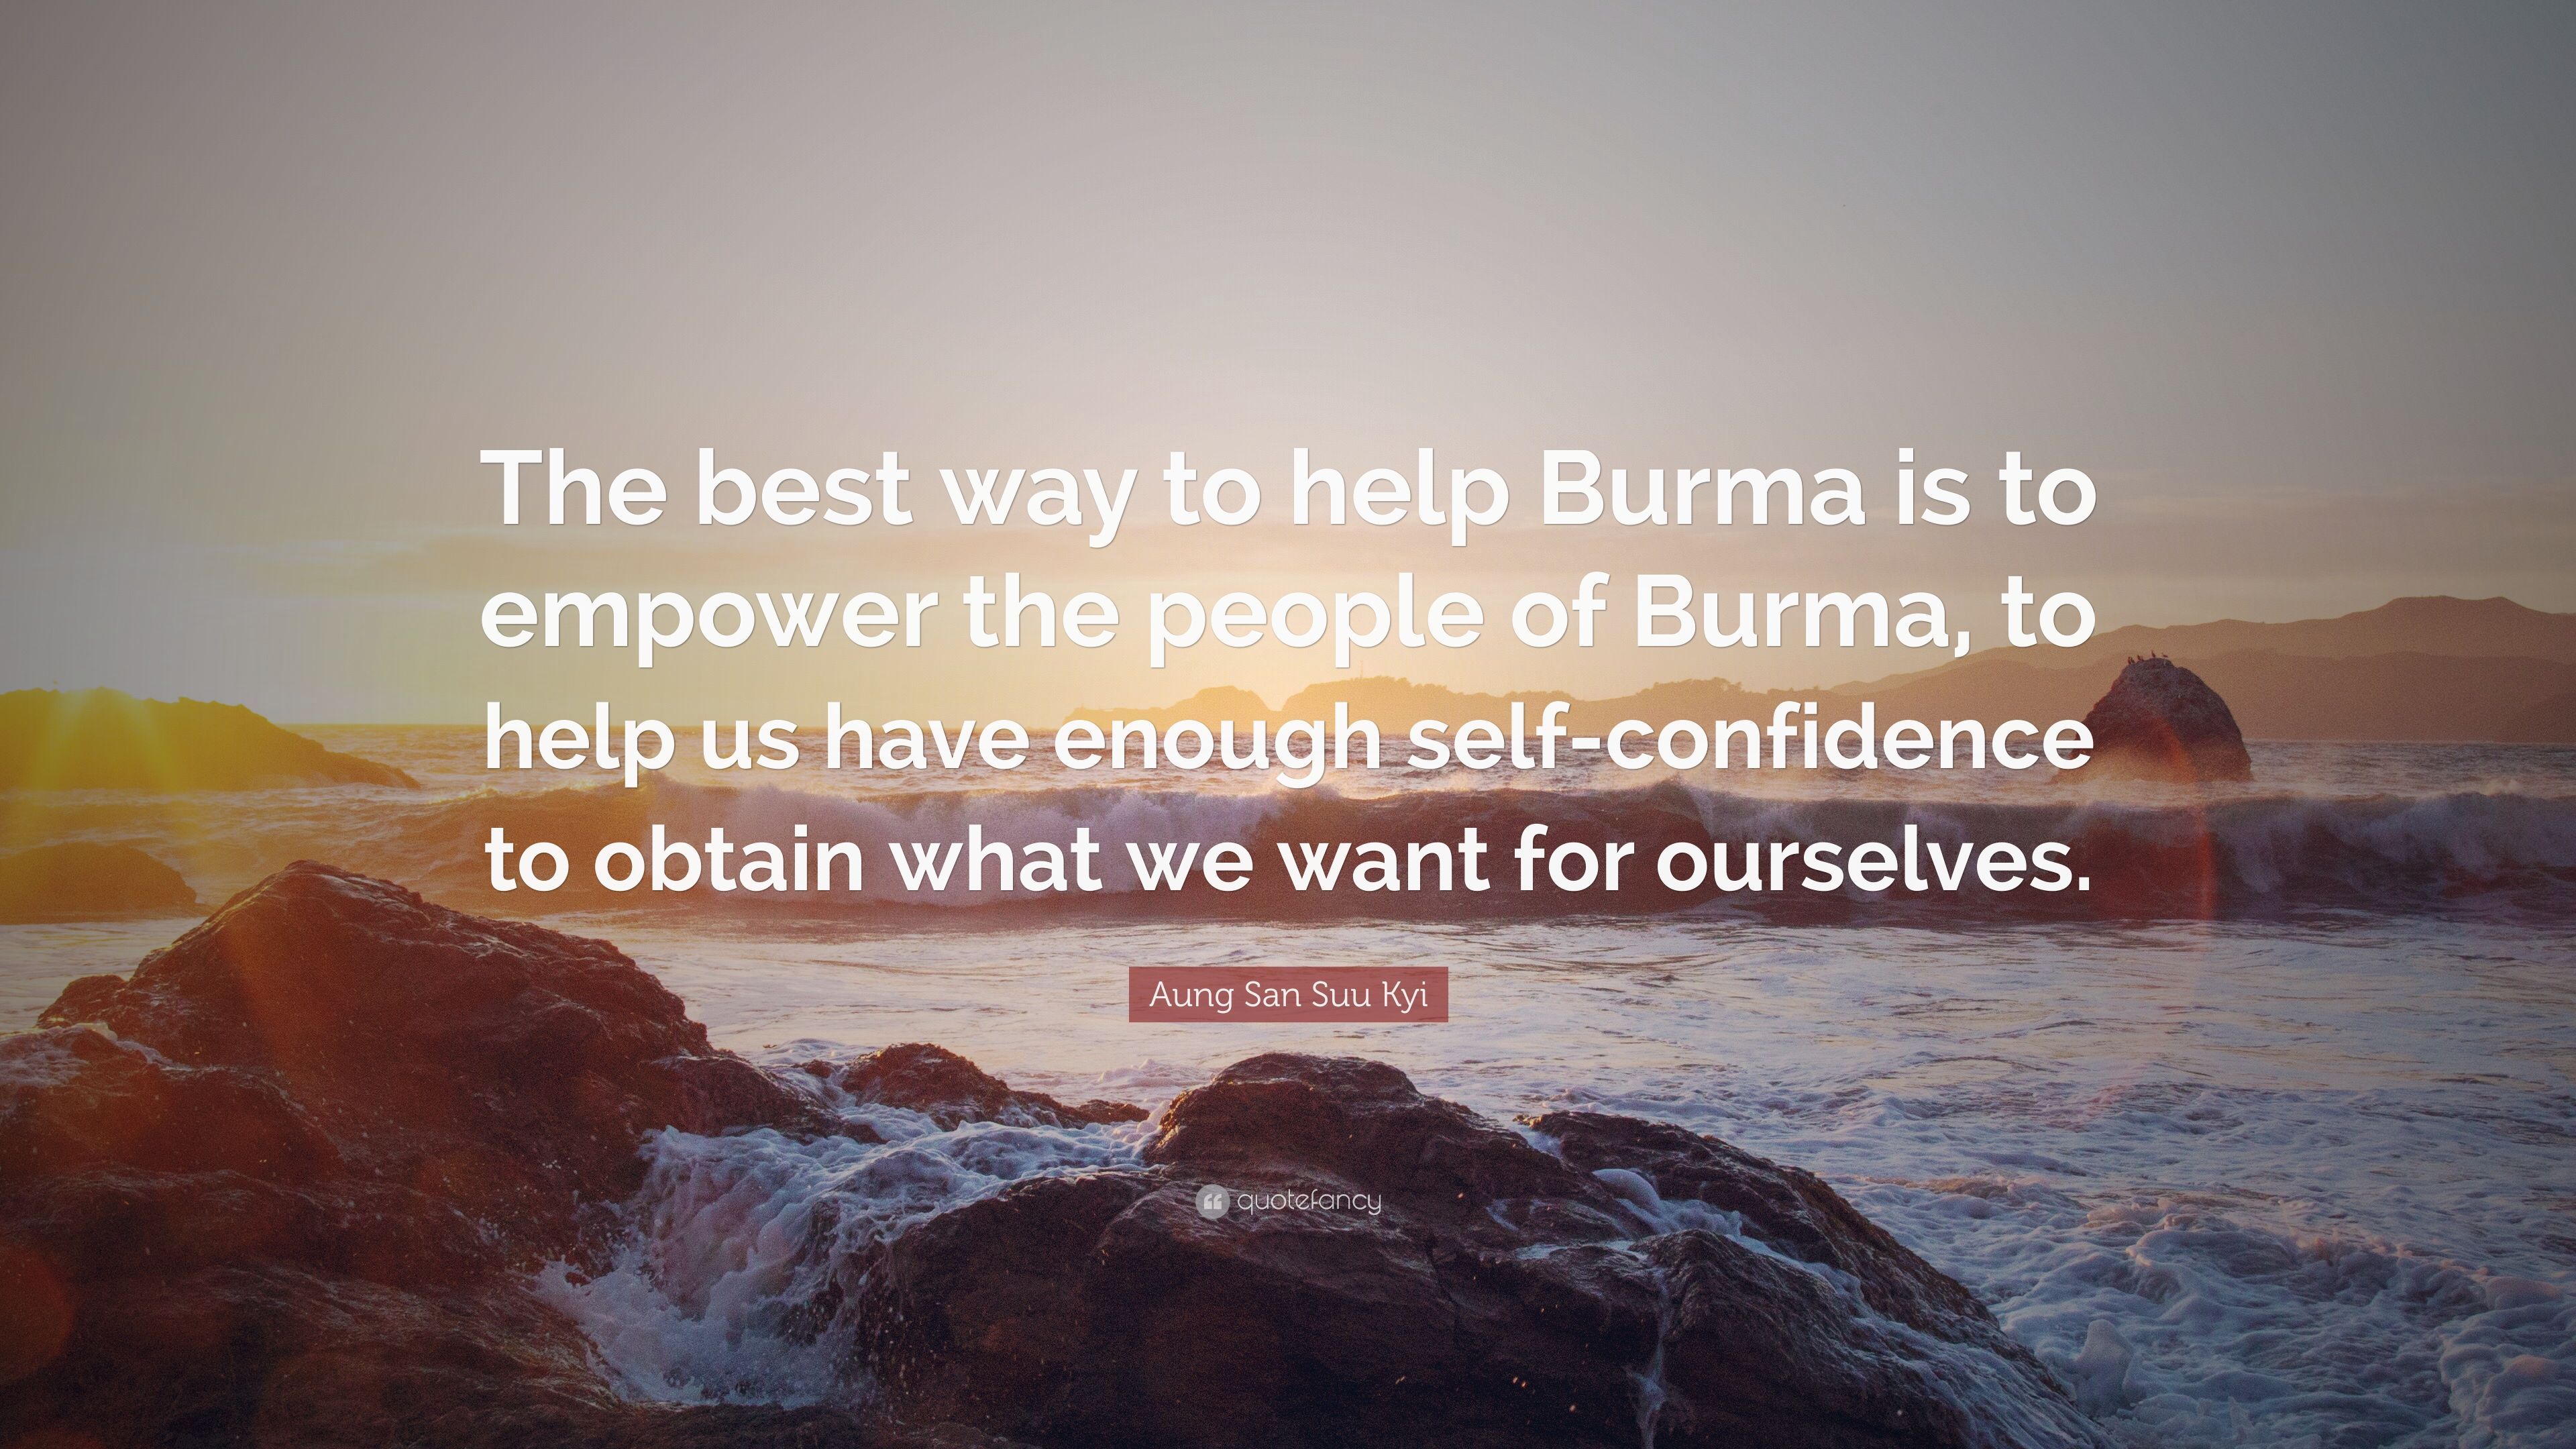 Aung San Suu Kyi Quote The Best Way To Help Burma Is To Empower